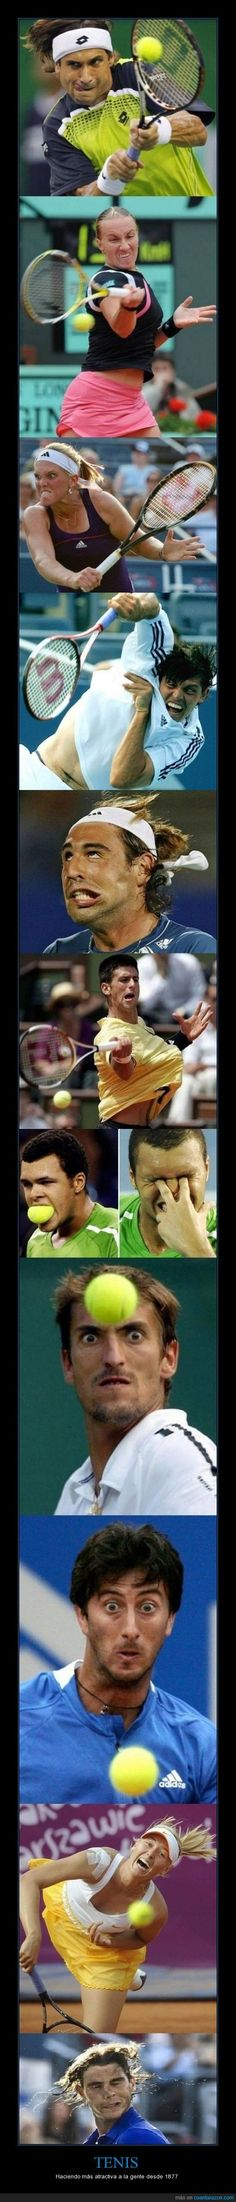 The many faces of tennis.